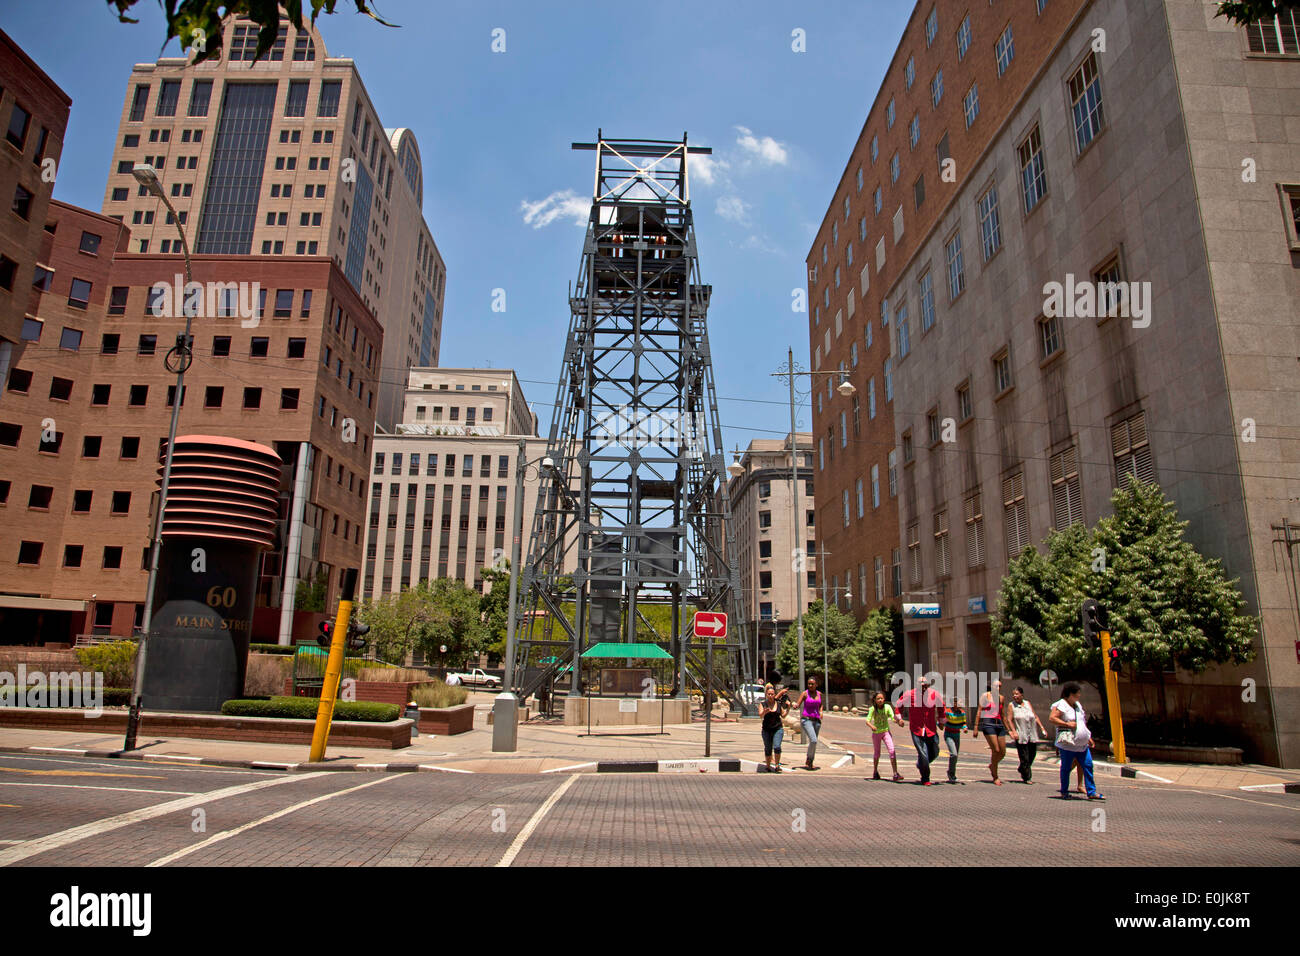 monument at mining district, Johannesburg, Gauteng, South Africa, Africa - Stock Image